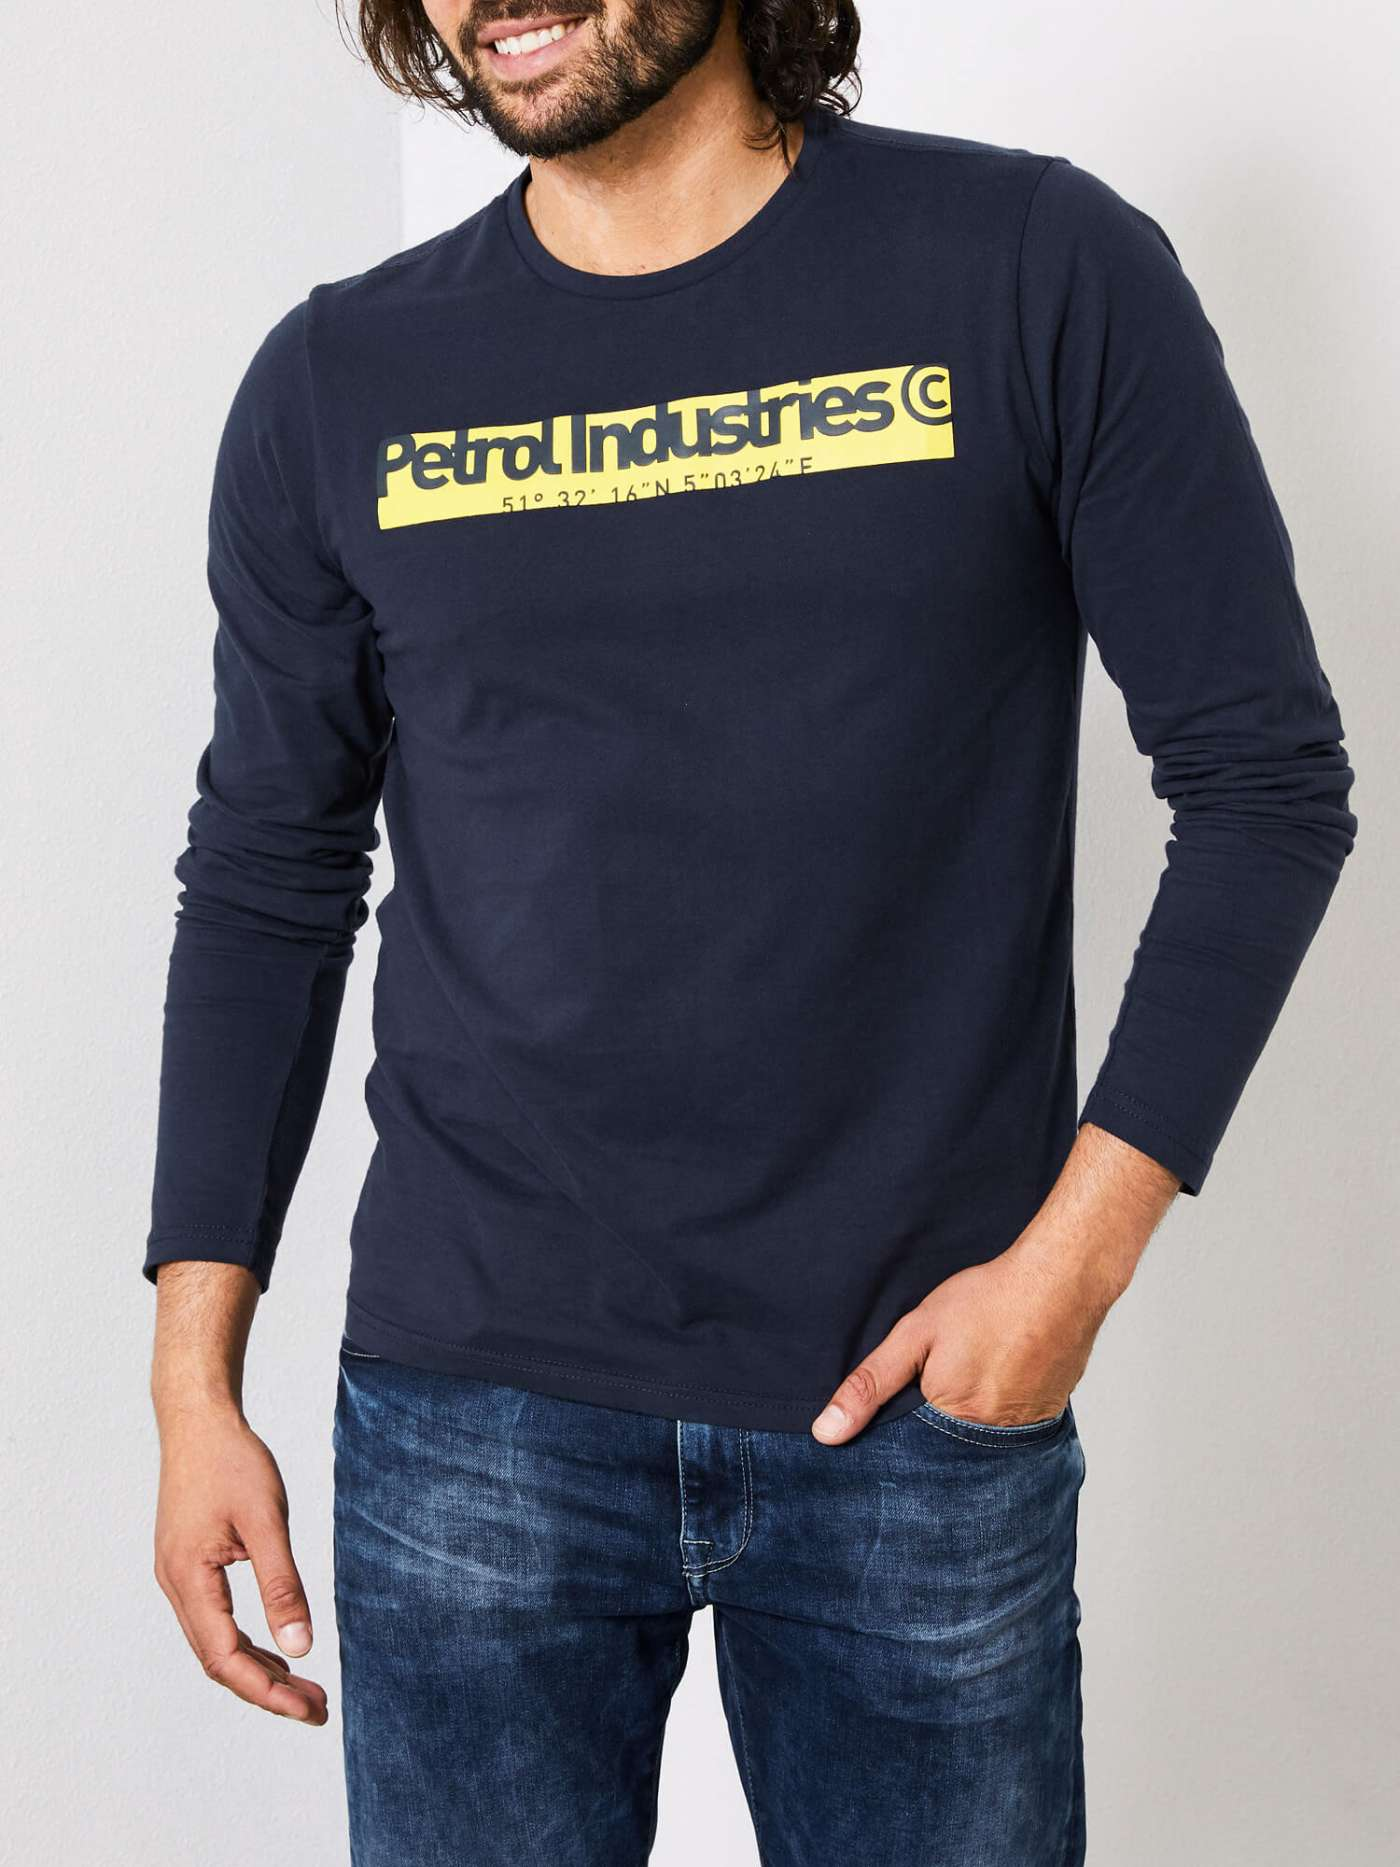 Long-Sleeved Petrol Industries Shirt